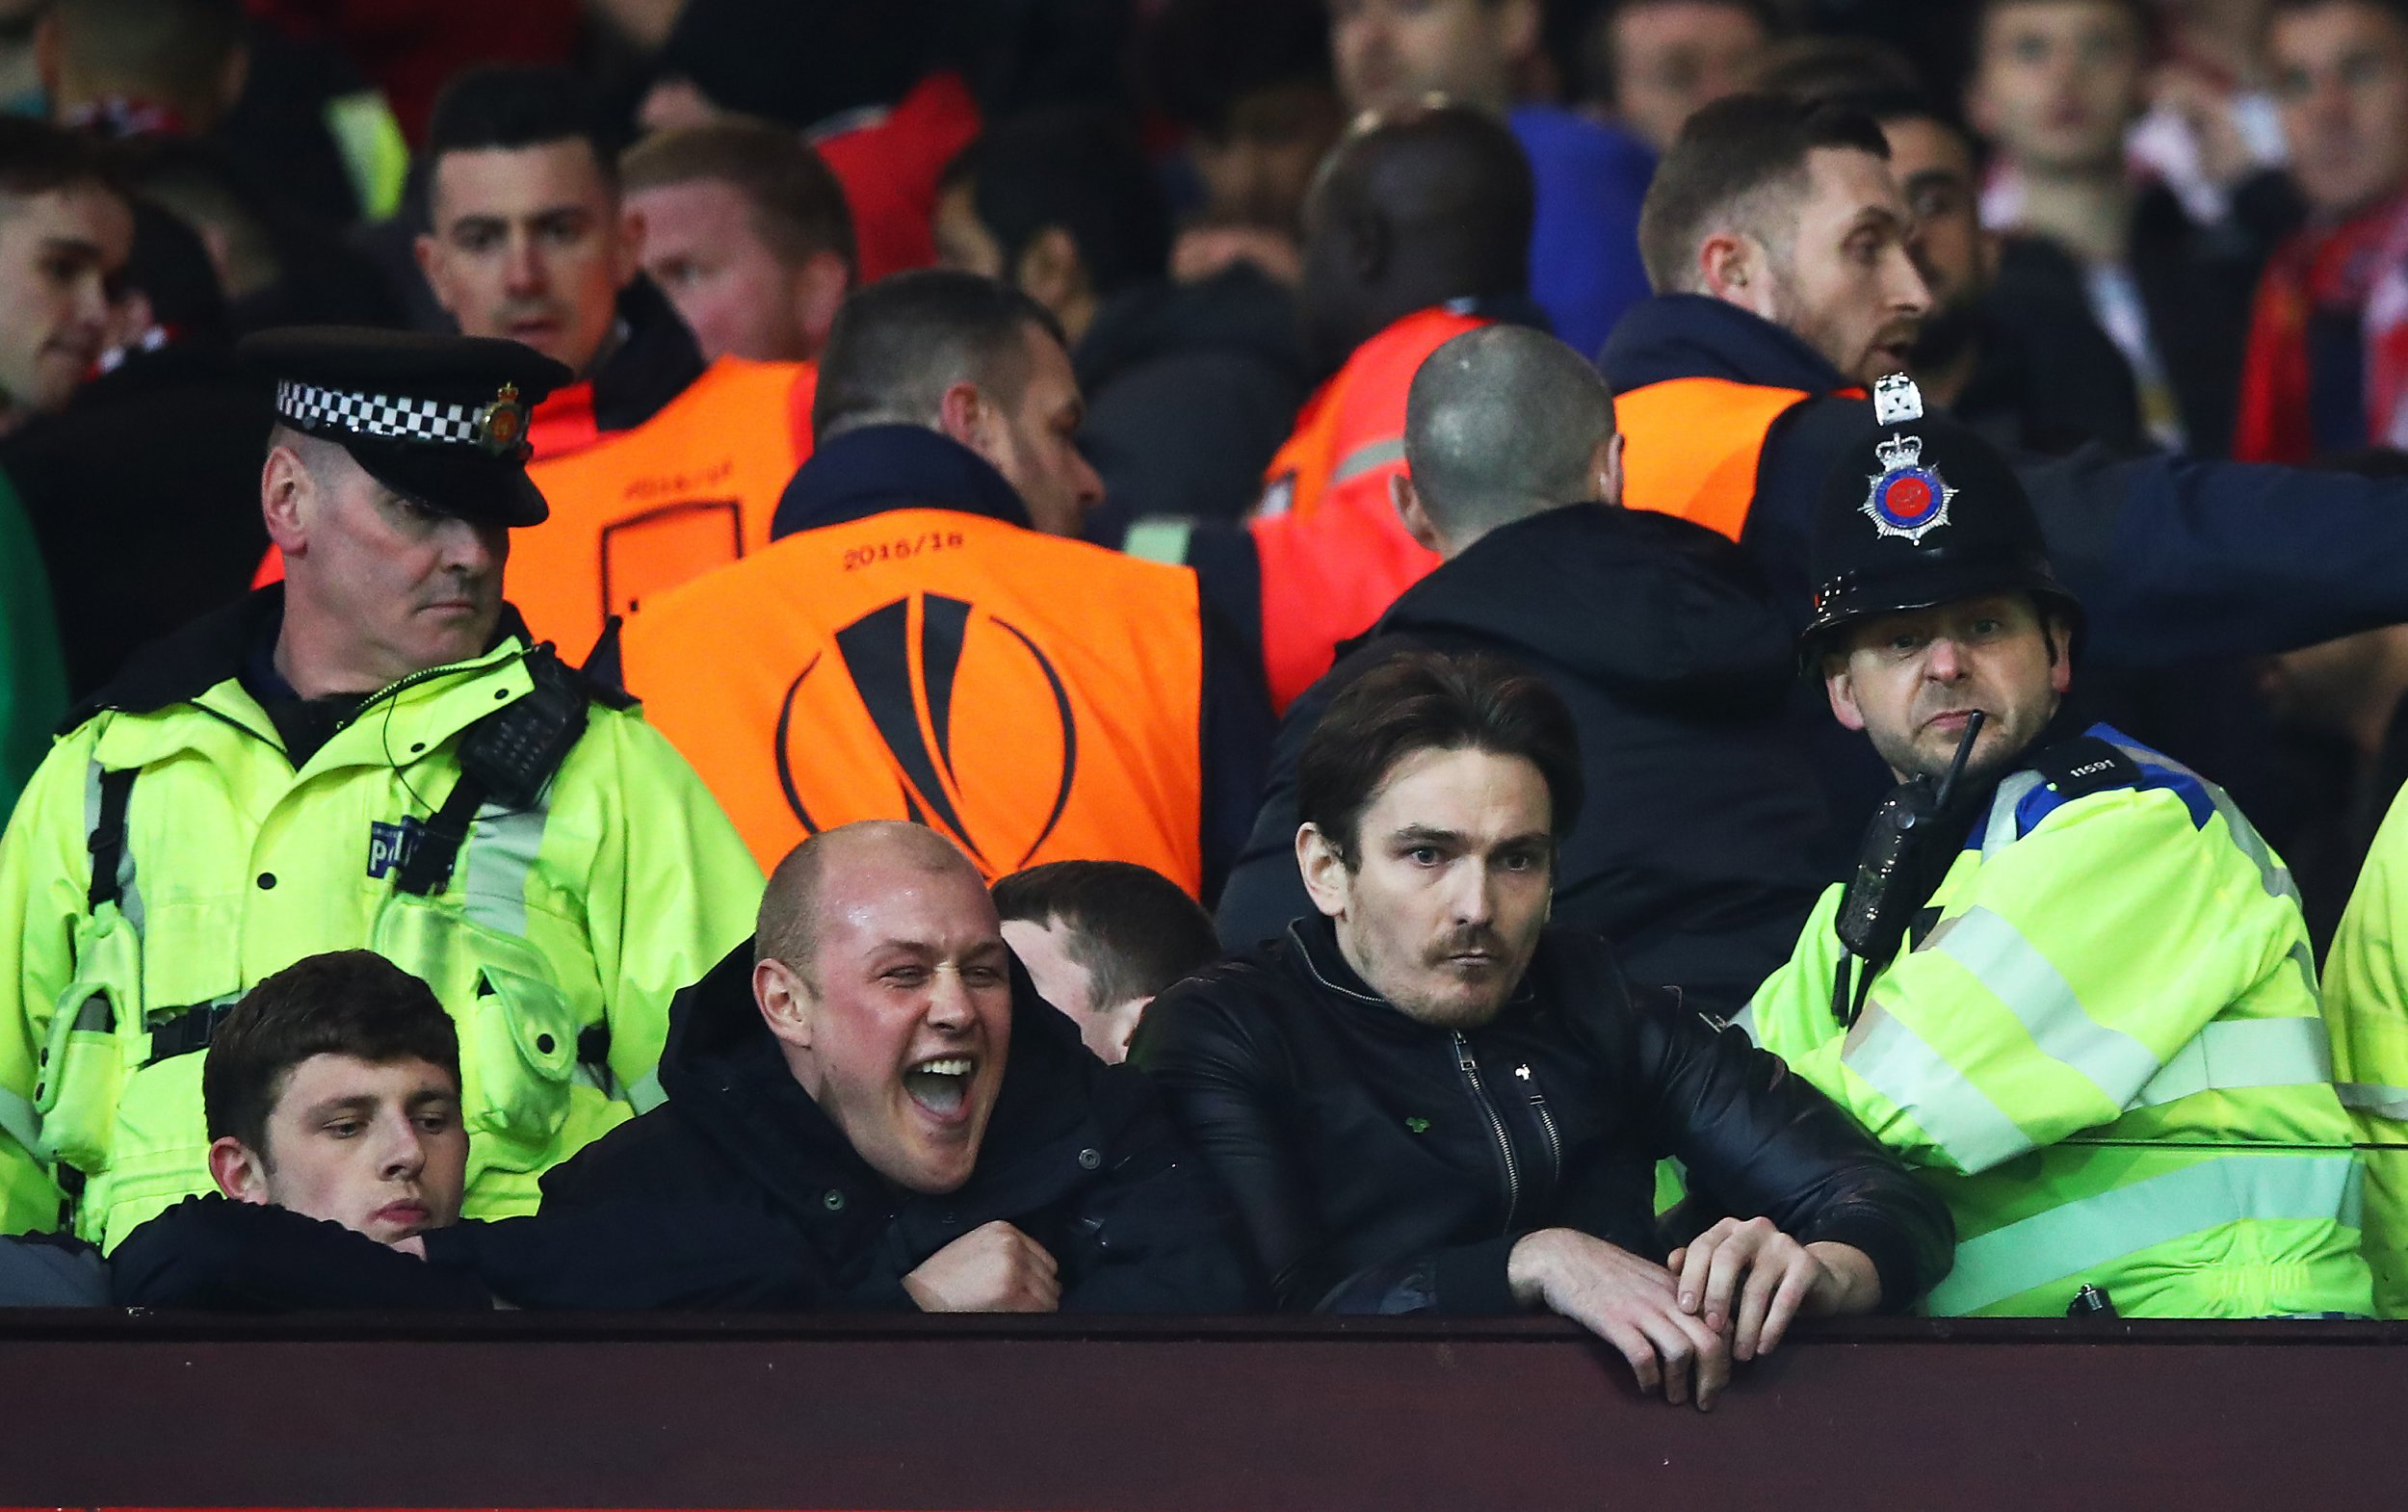 Fans look on after the UEFA Europa League round of 16, second leg match between Manchester United and Liverpool, March 17.